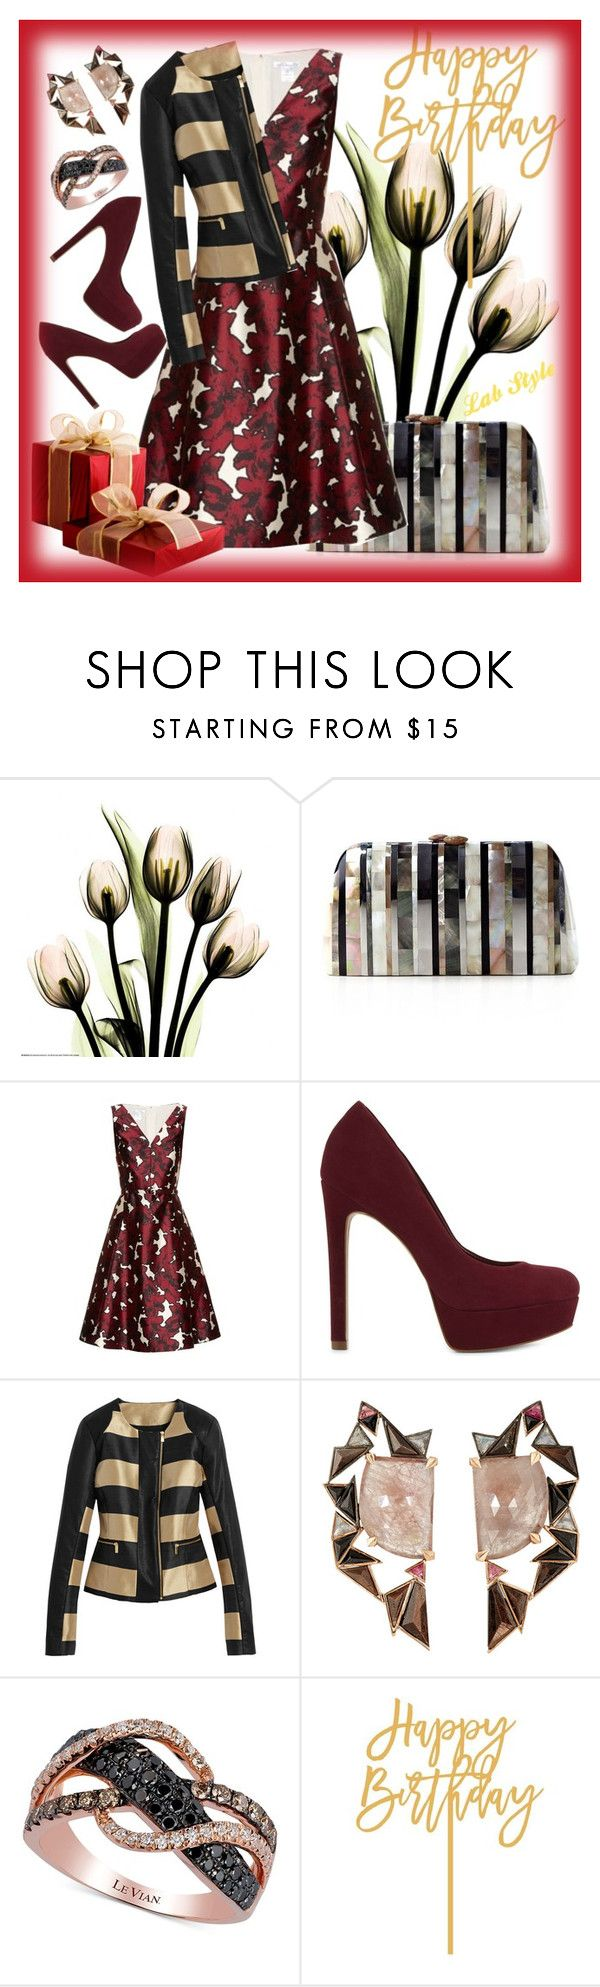 """for Tatiana D."" by labstyle on Polyvore featuring мода, Serpui, Oscar de la Renta, ALDO, Nak Armstrong и LE VIAN"